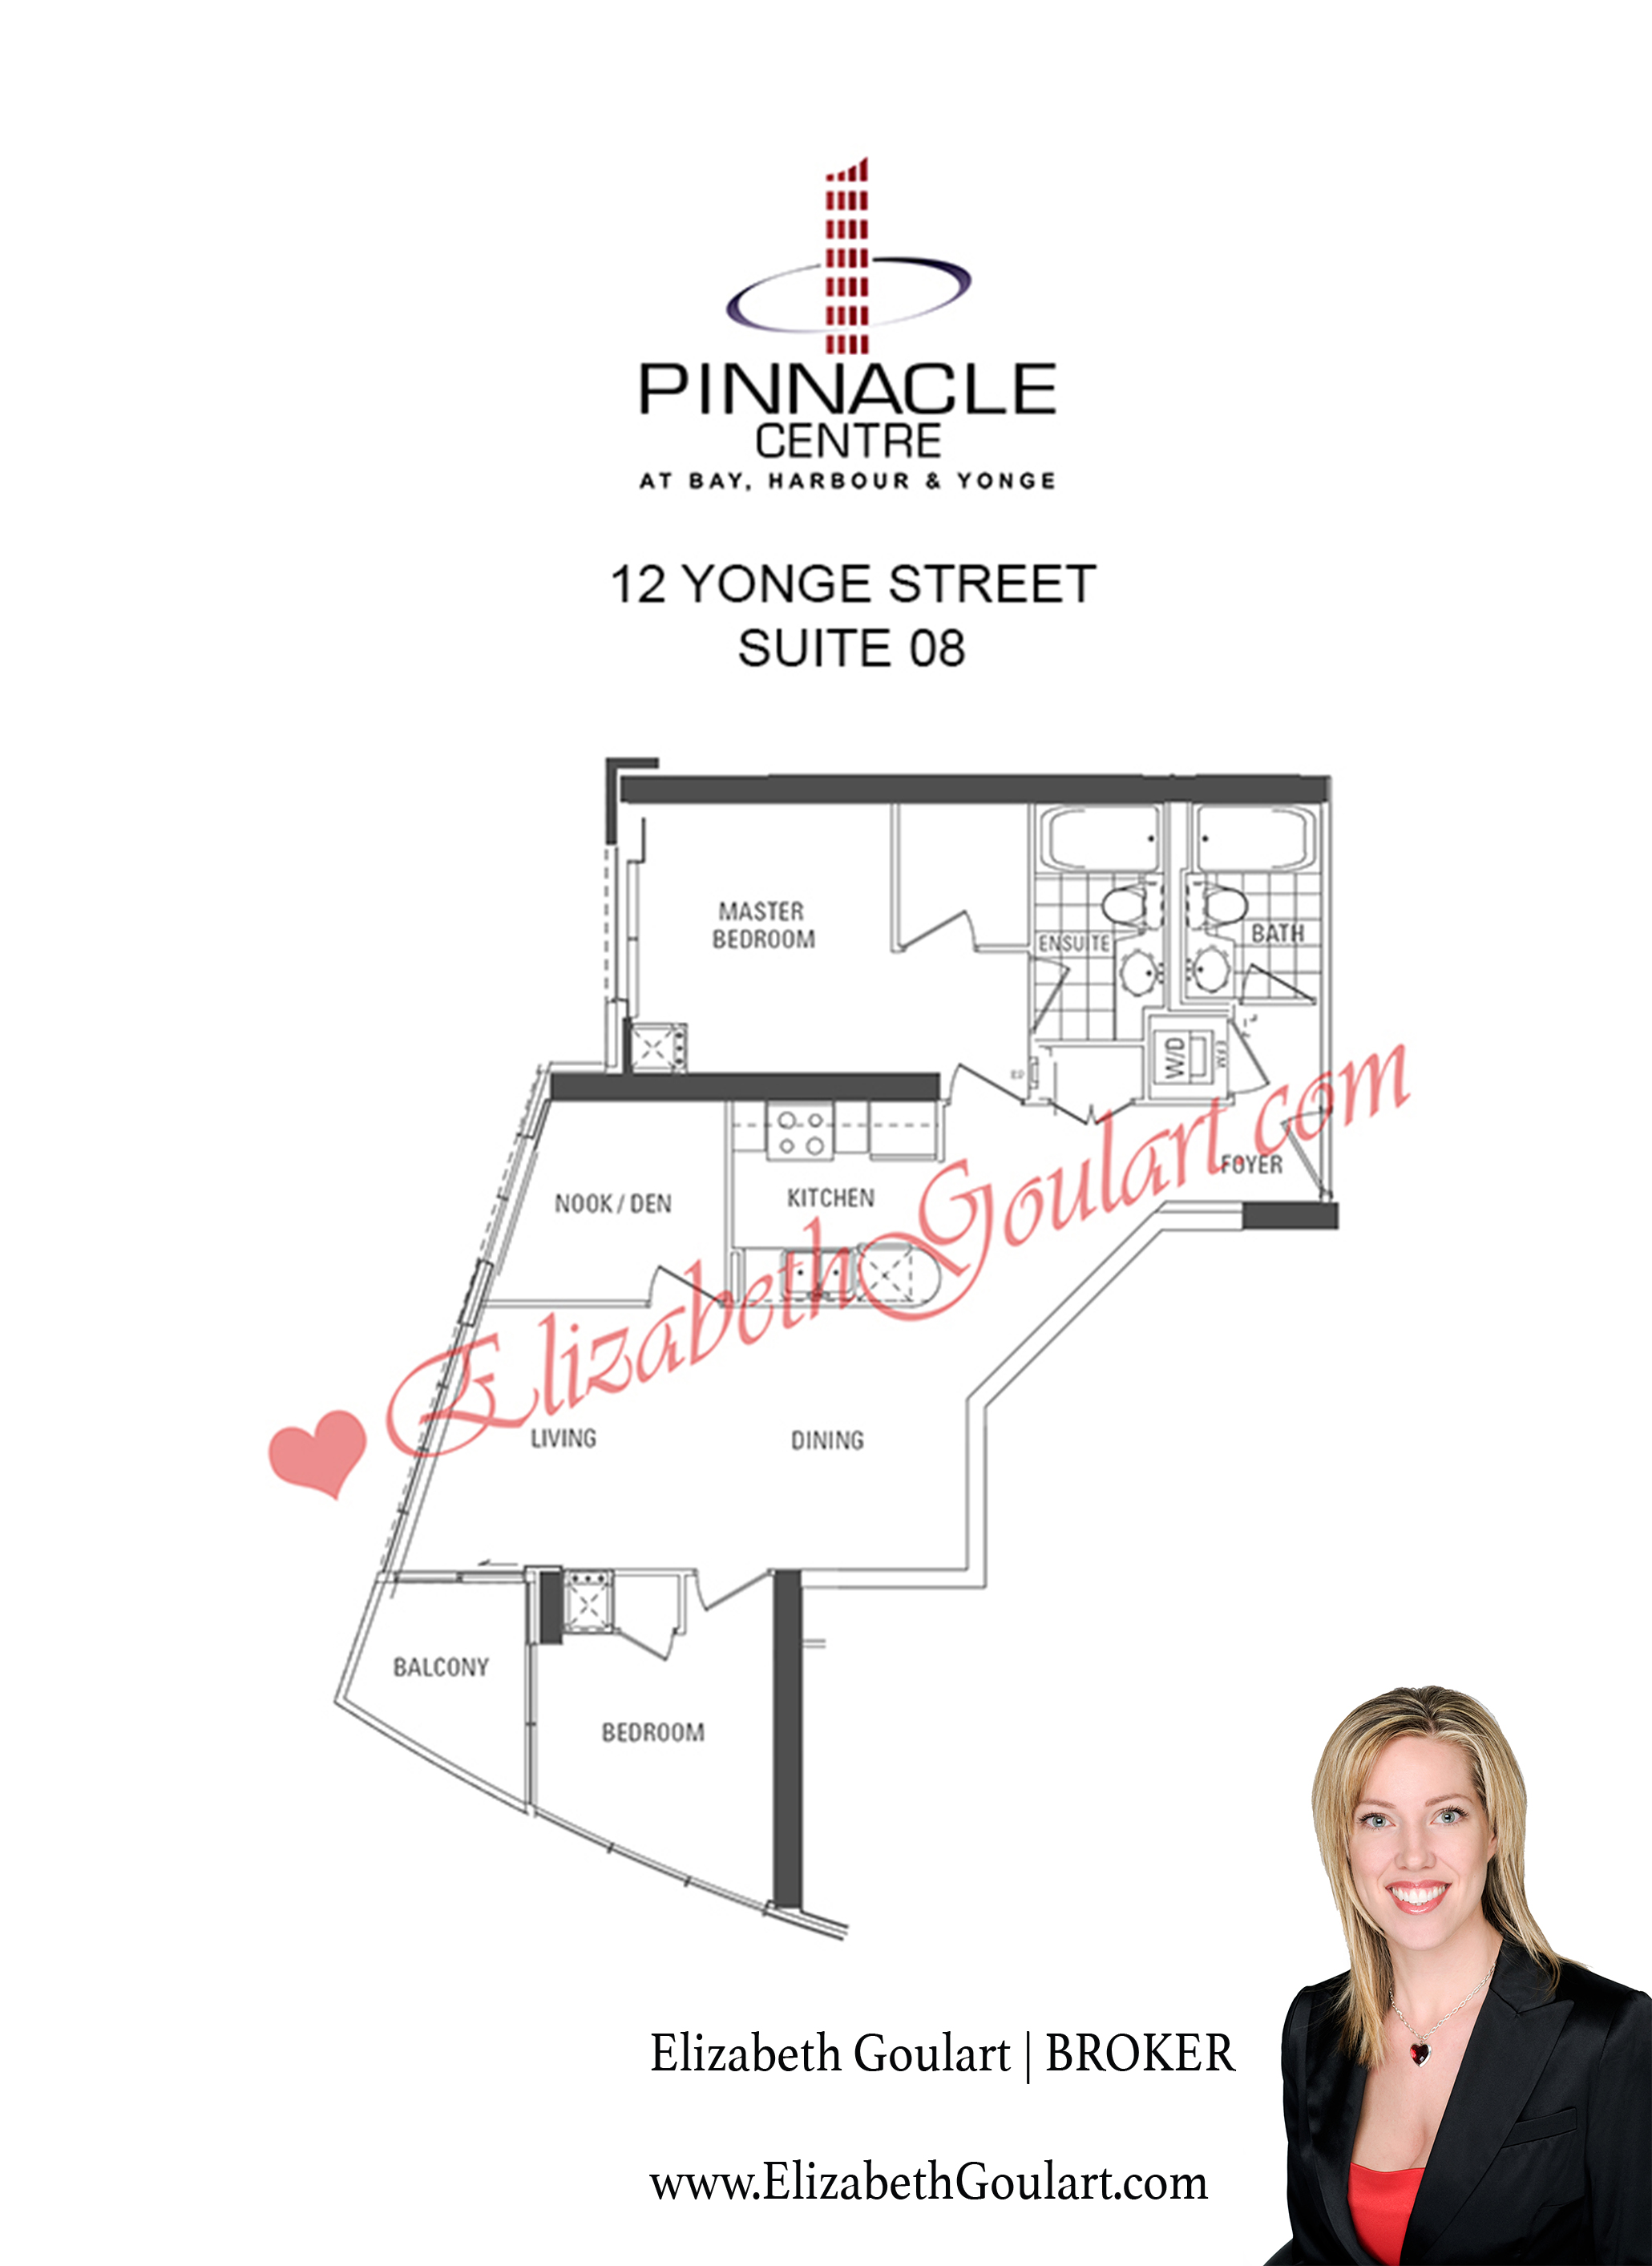 12 yonge street pinnacle centre condos floor plans 16 yonge street pinnacle centre condos floor plans